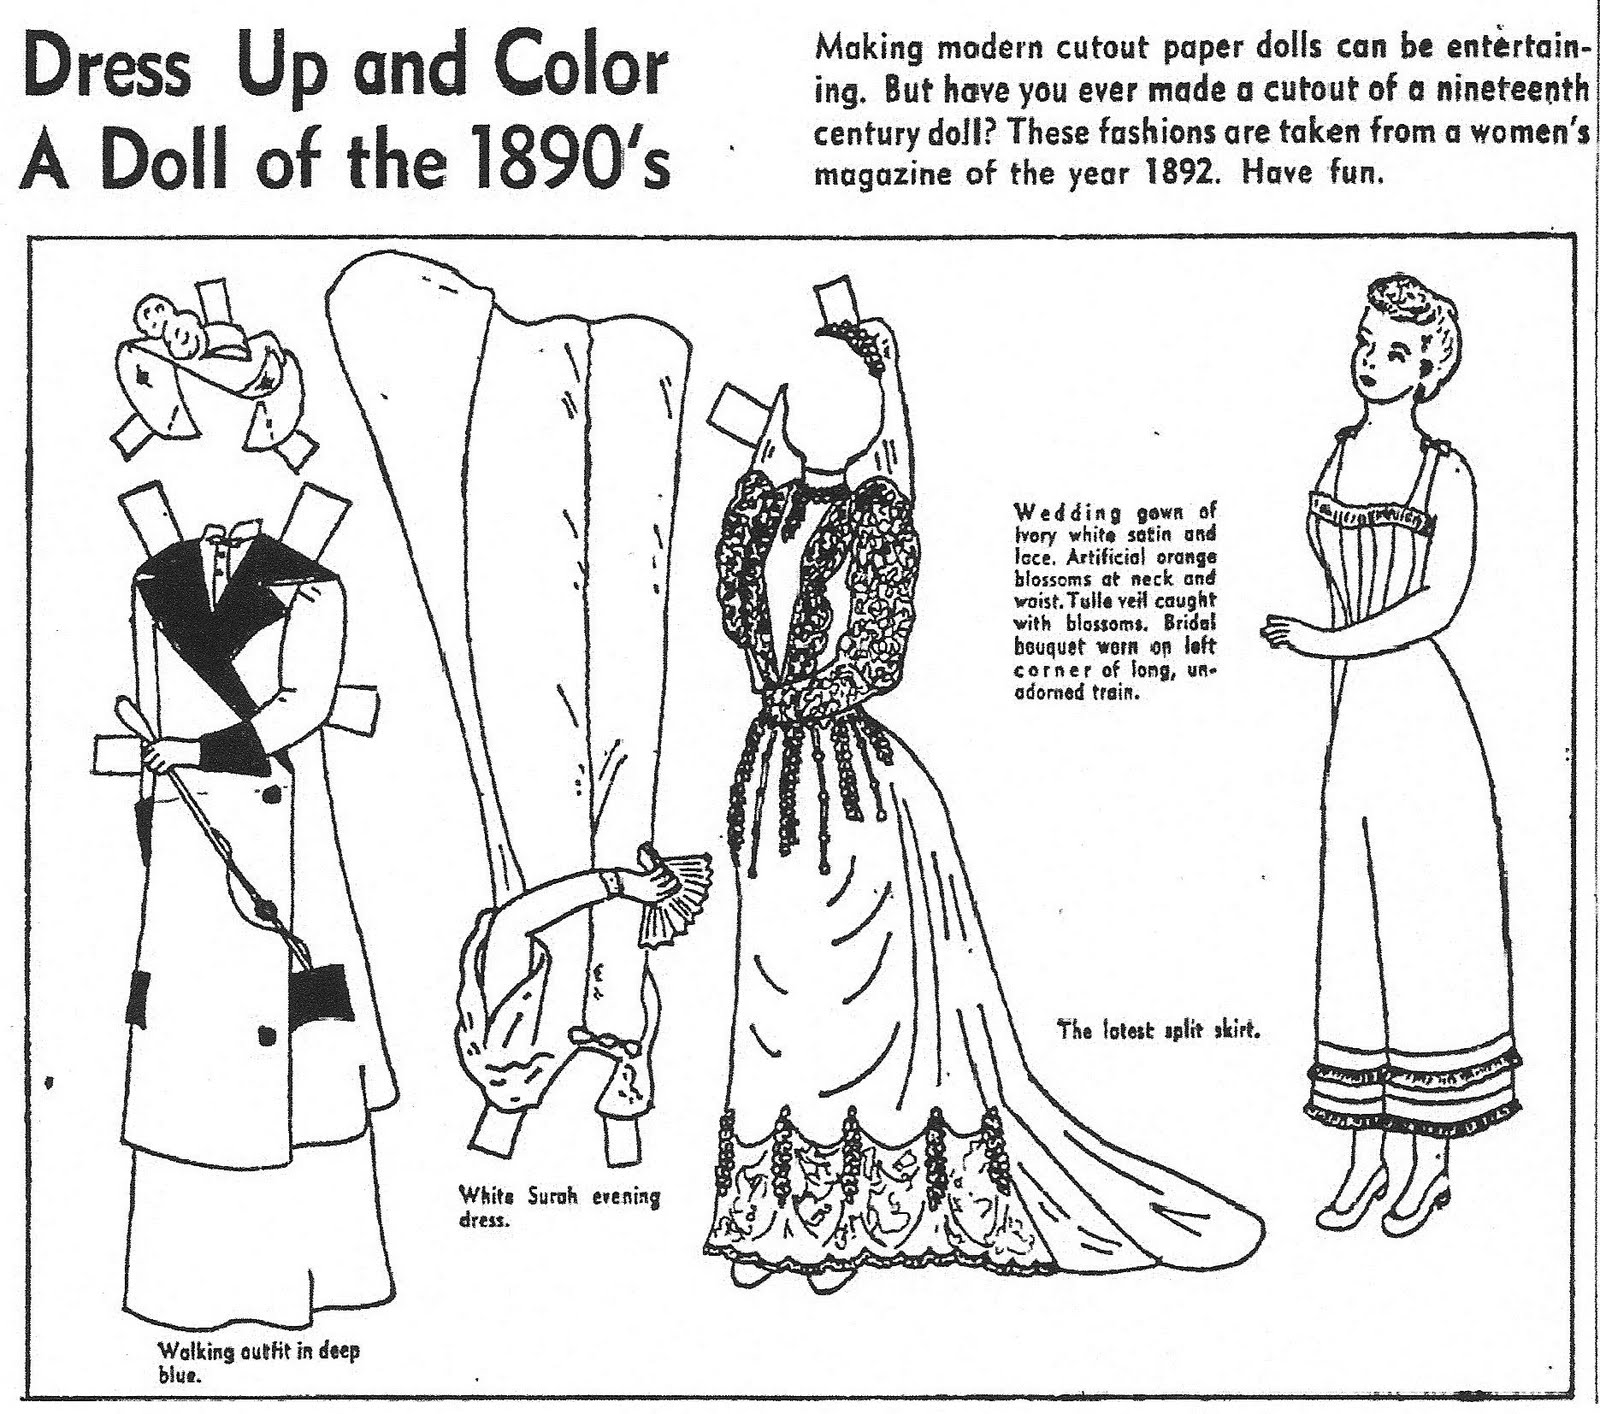 dress up paper dolls mostly paper dolls dress up and color a doll of the 189039s dress up dolls paper